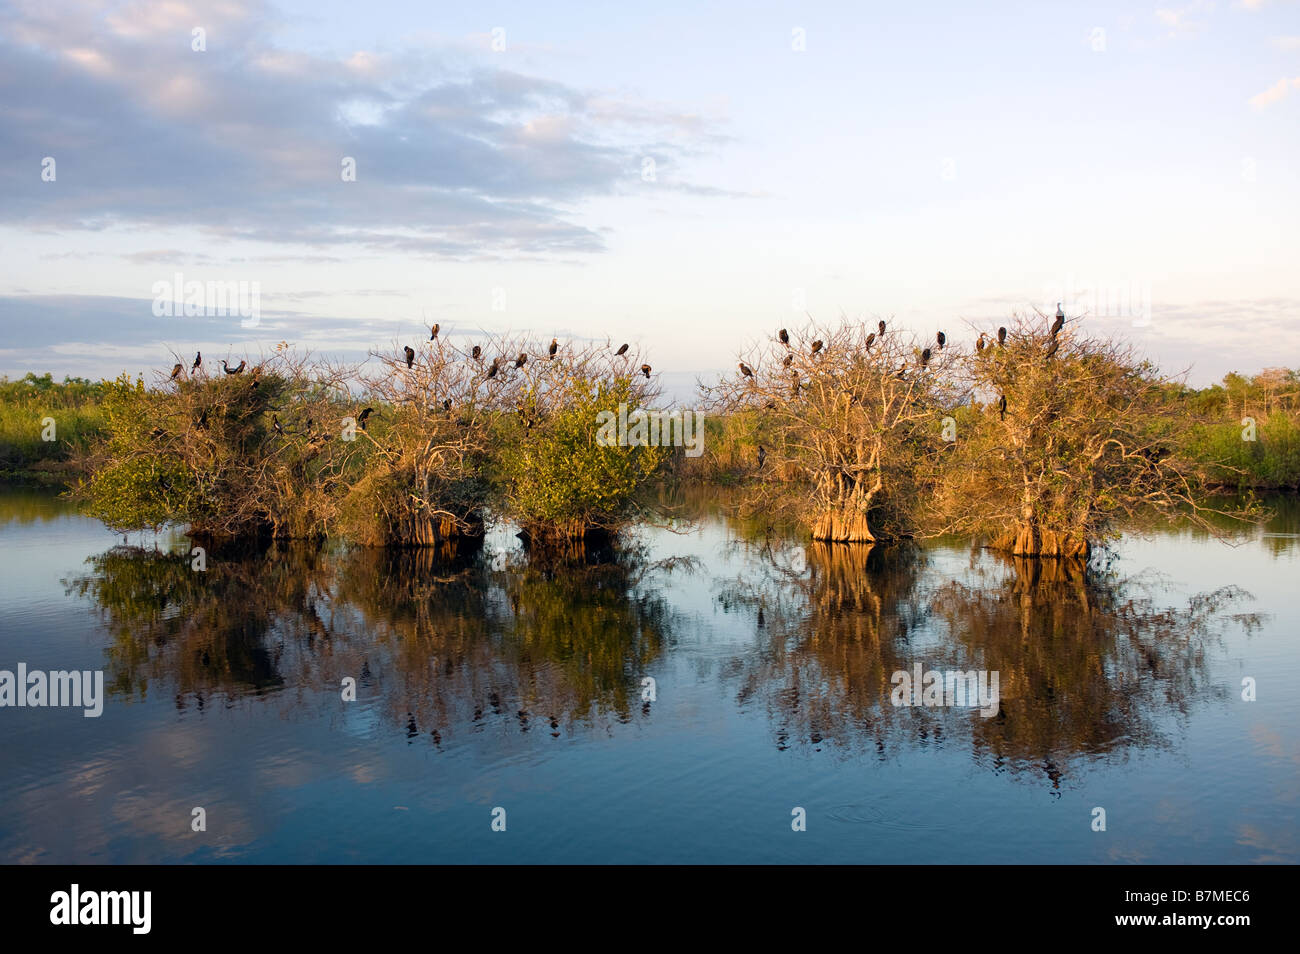 Anhinga and cormorant rookery or nesting area in Everglades National Park Florida - Stock Image